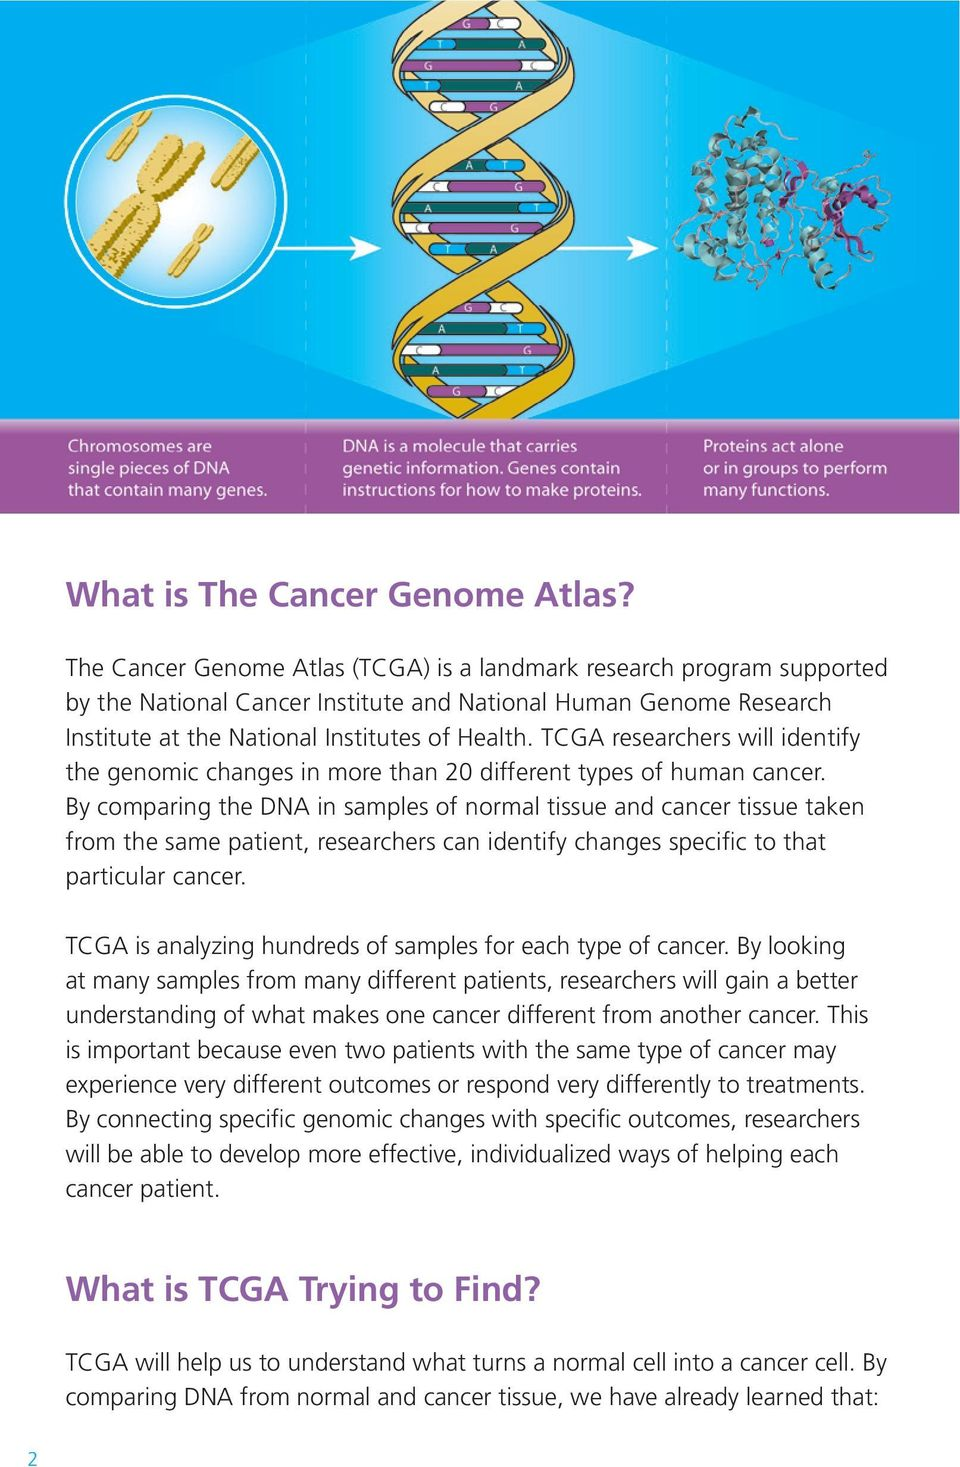 TCGA researchers will identify the genomic changes in more than 20 different types of human cancer.